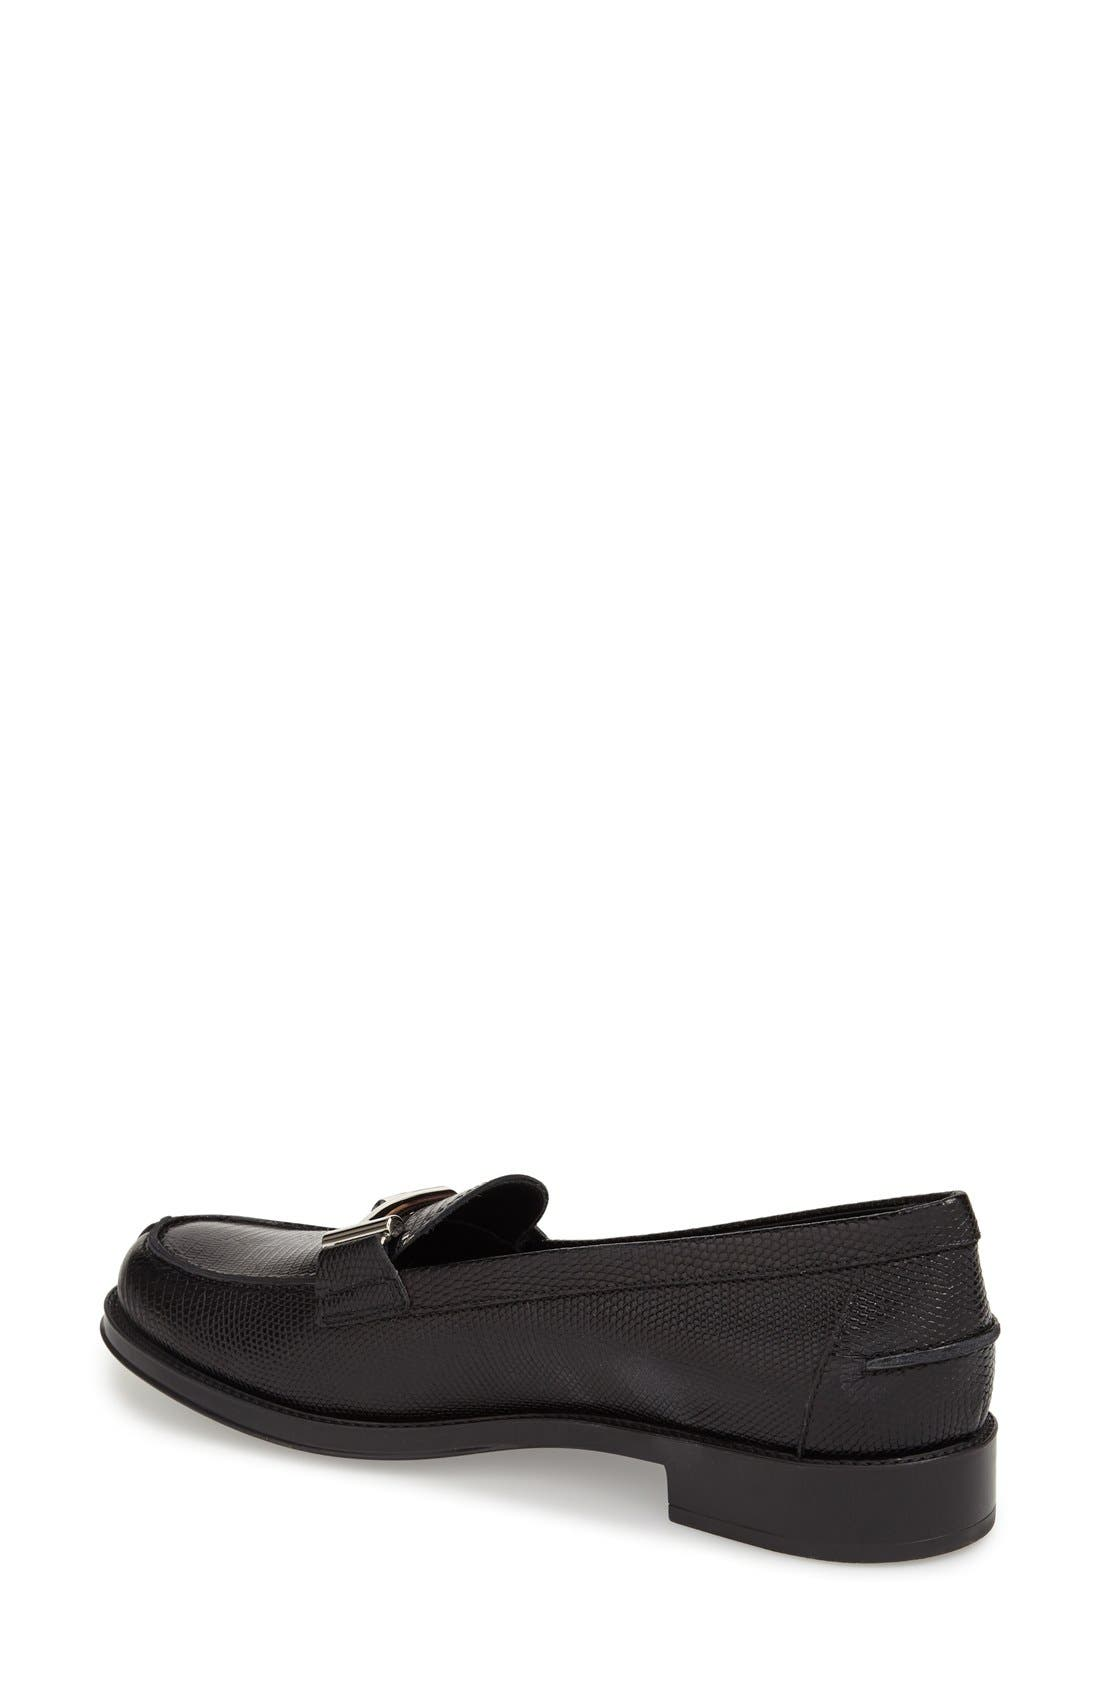 'Double T' Loafer,                             Alternate thumbnail 2, color,                             Black